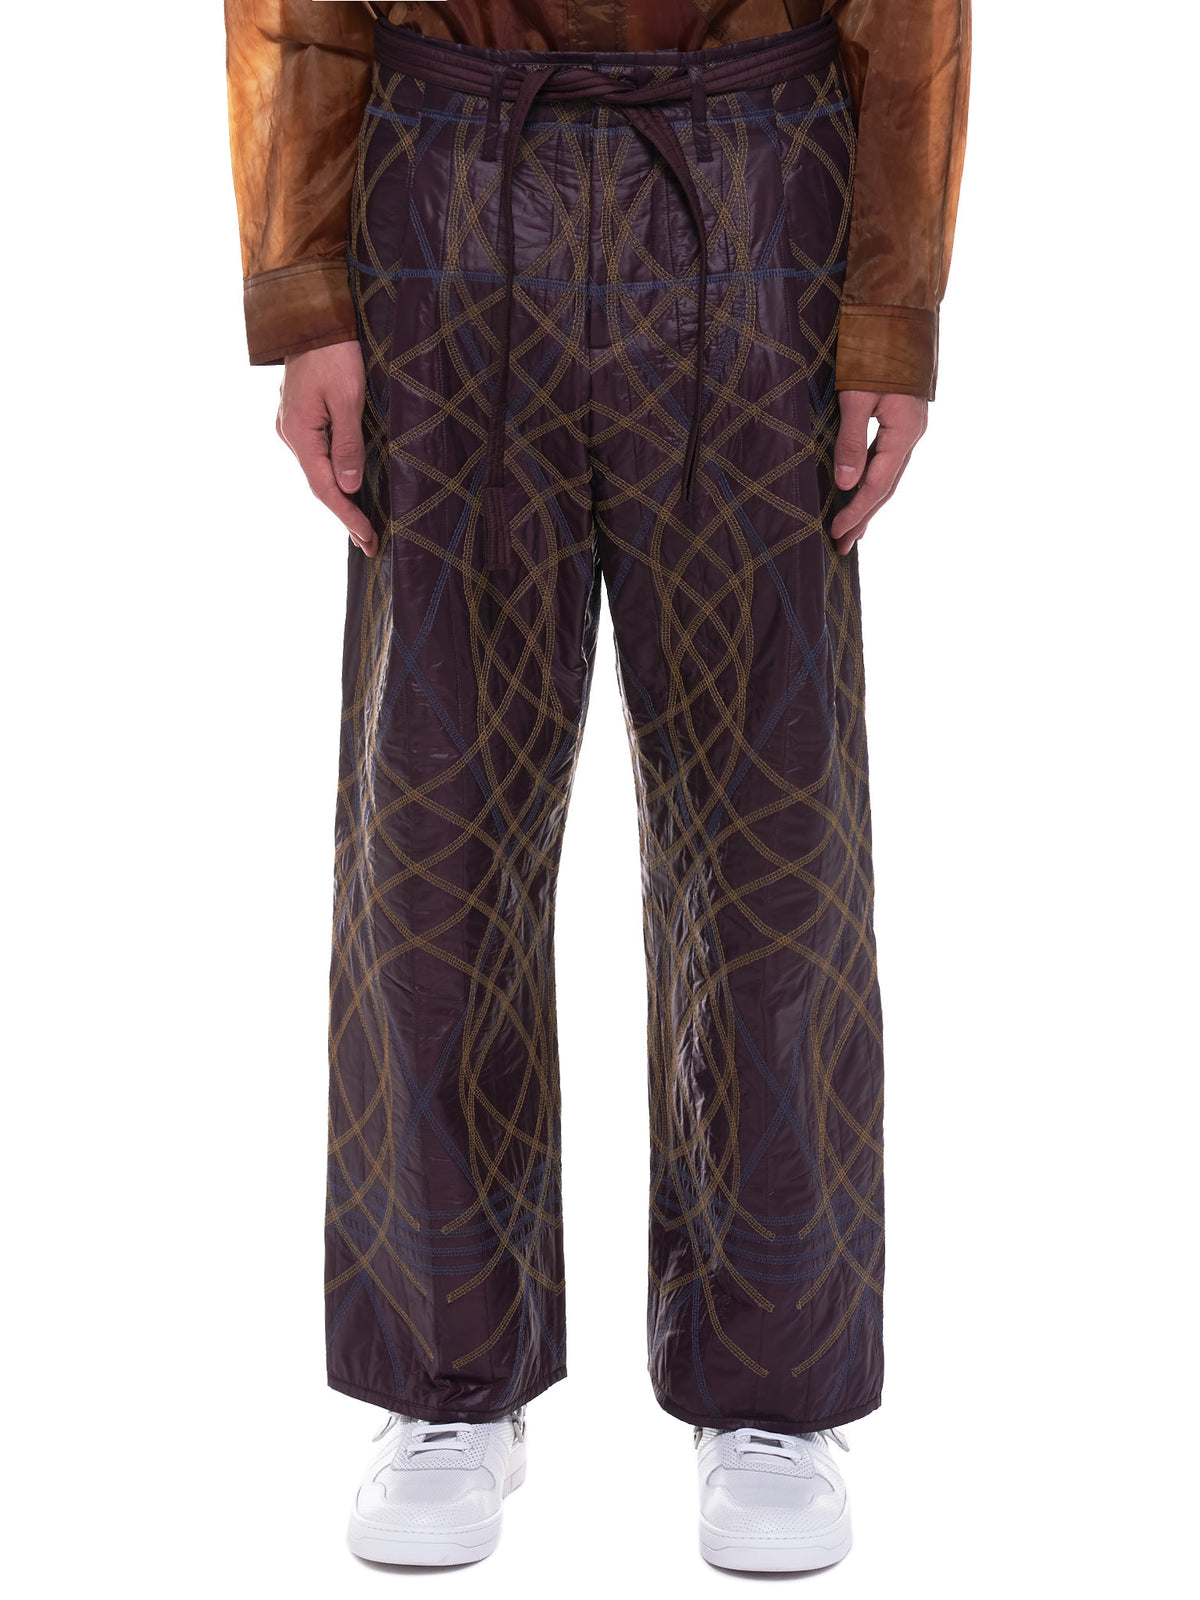 Embroidery Swirl Trousers (MWOTRS07-BURGUNDY)